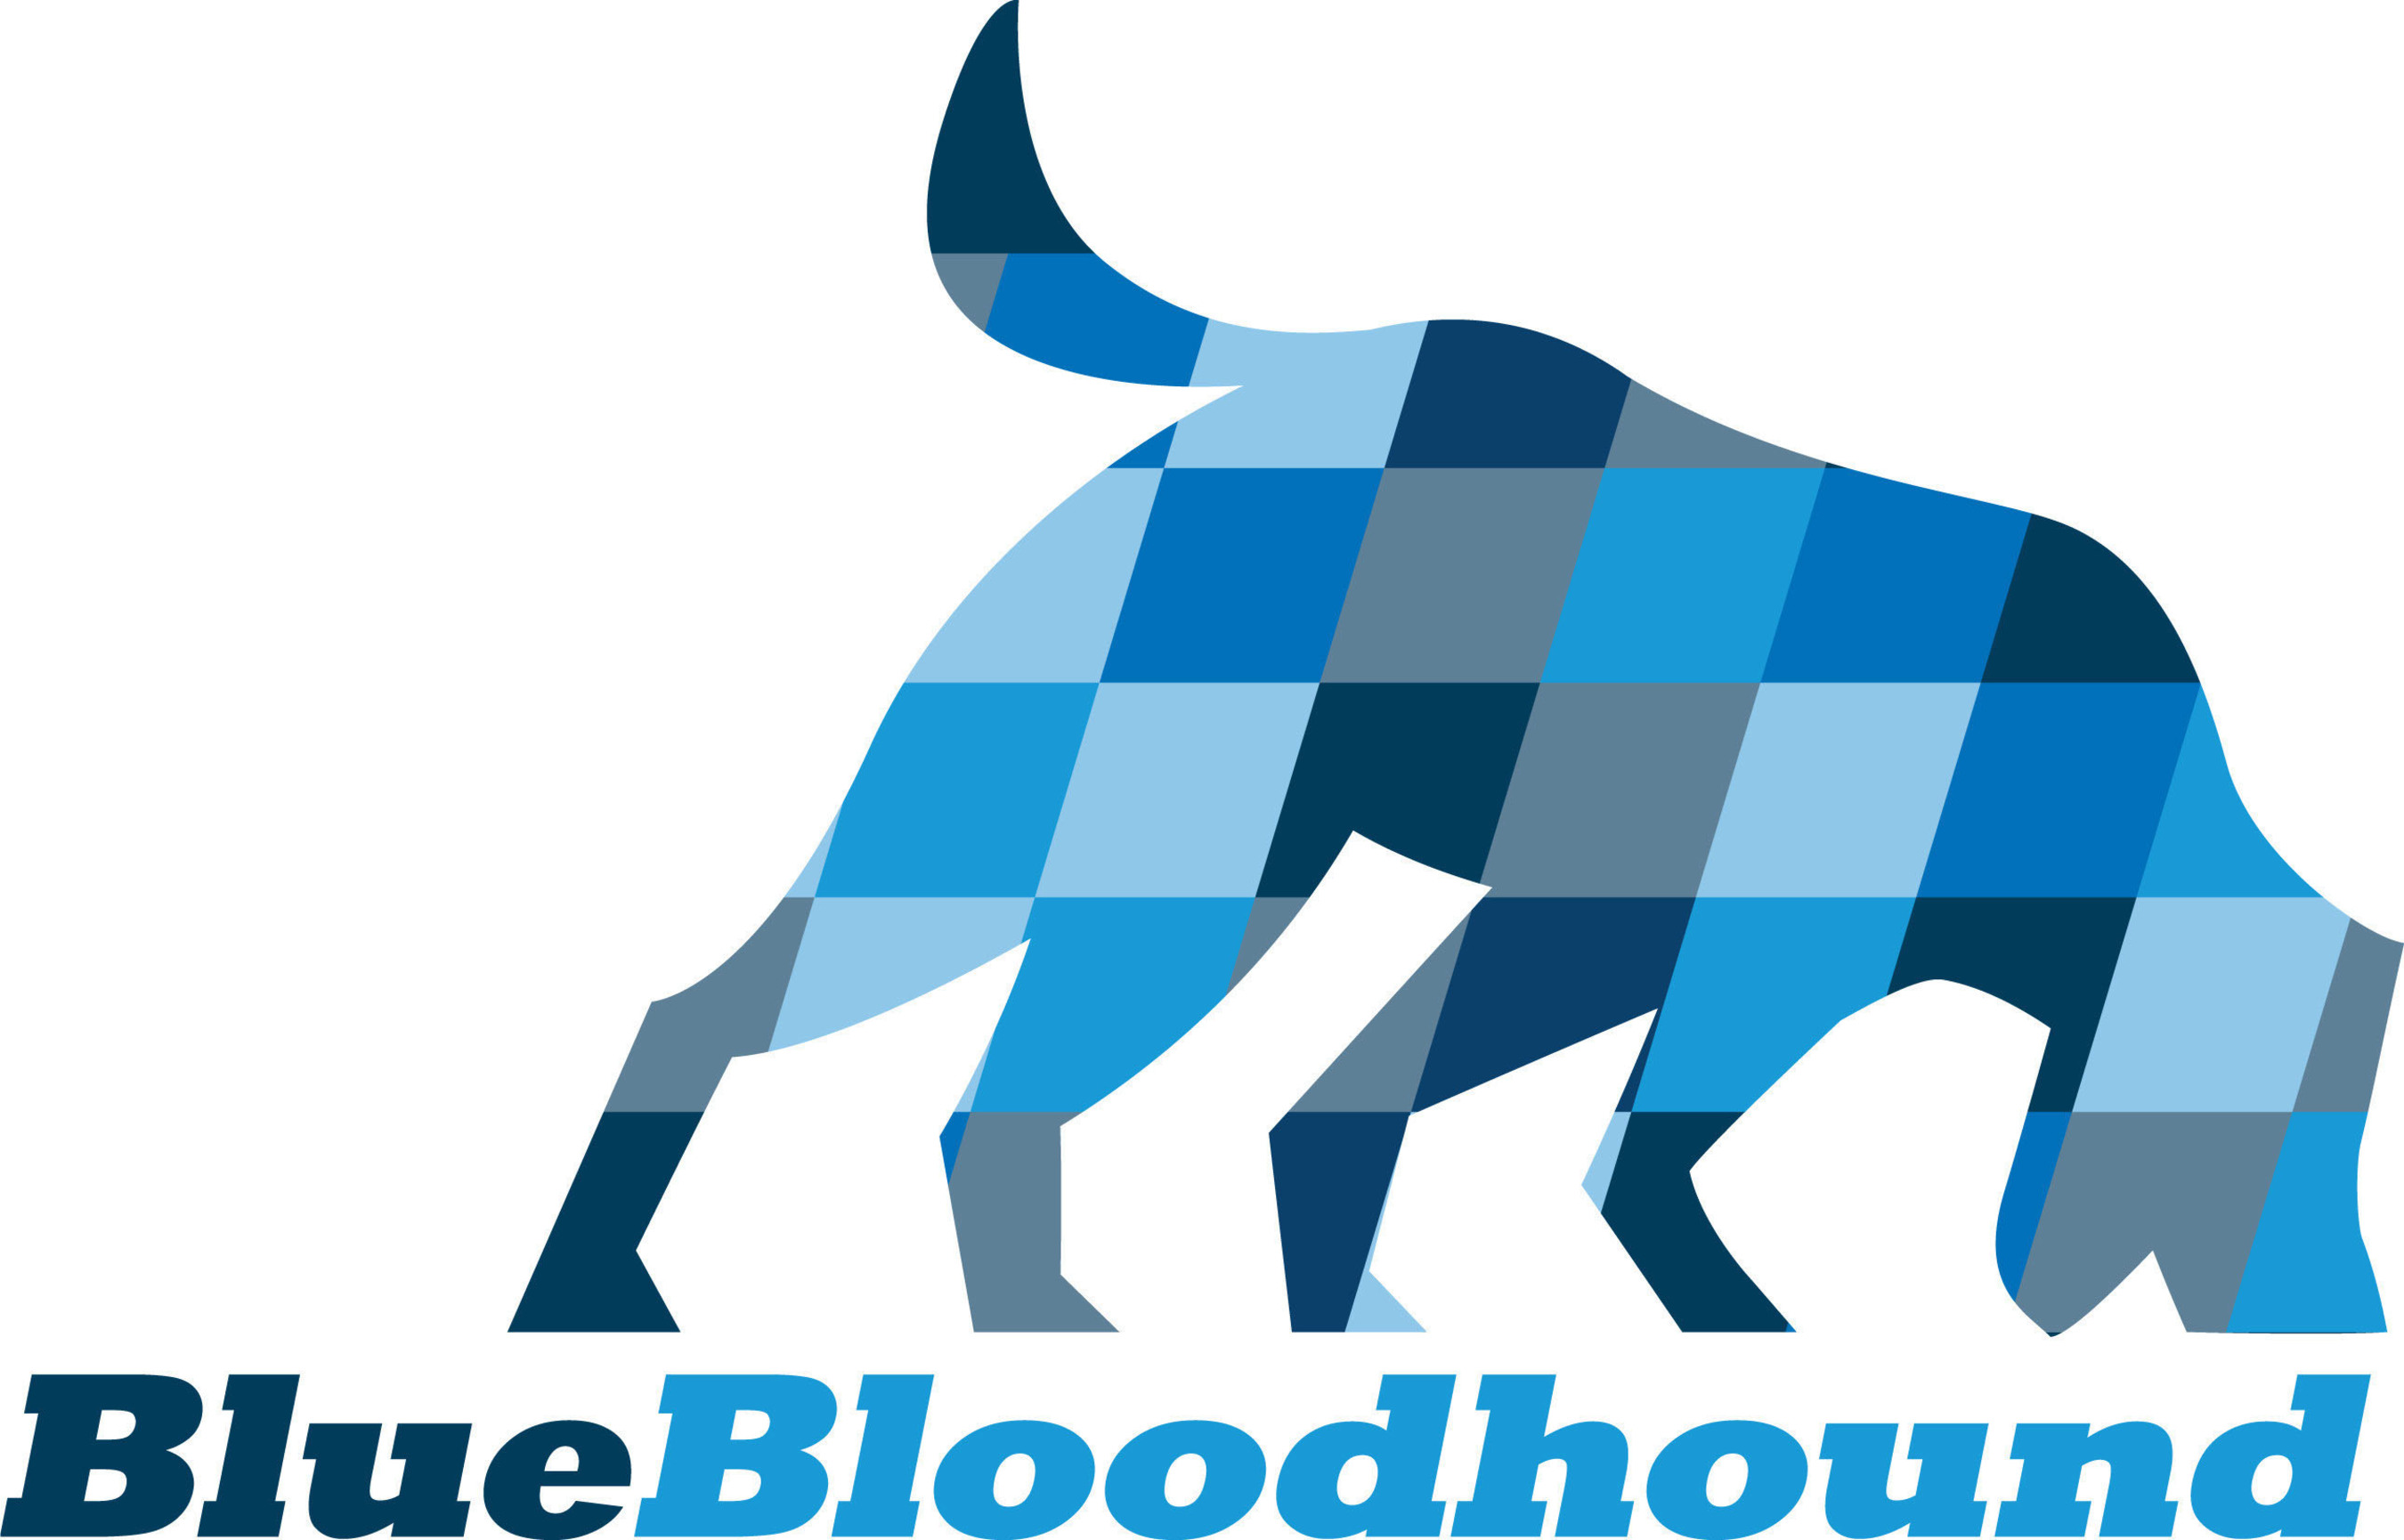 Blue Bloodhound is revolutionizing the trucking industry through its new, online marketplace by connecting qualified truck drivers in need of extra work, with motor carriers posting immediate pay-by-the-run local and long-haul jobs throughout the United States.